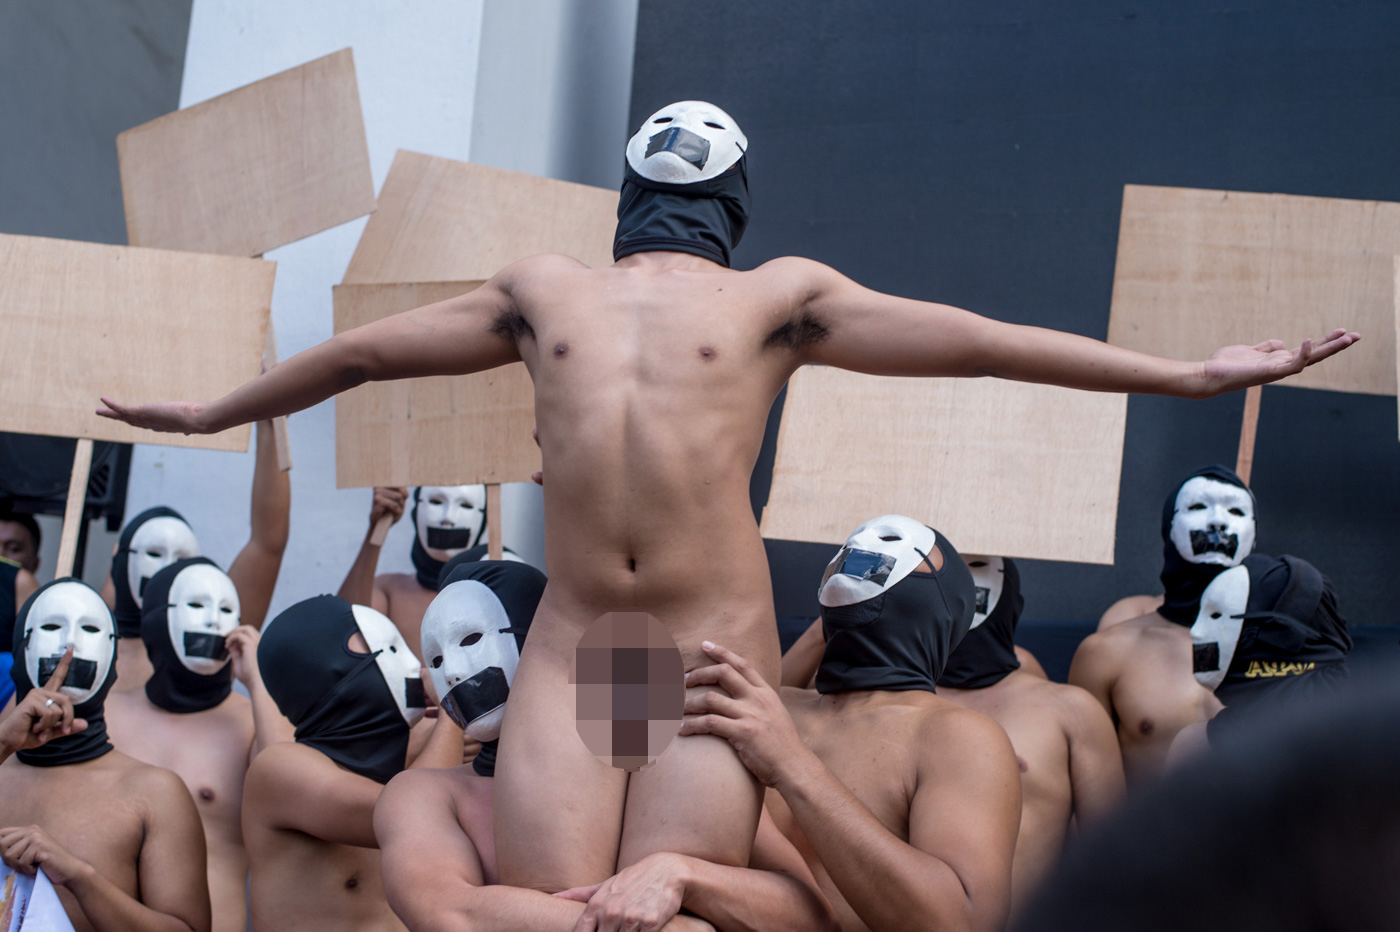 OBLATION. An Alpha Phi Omega (APO) fraternity member replicates UP's Oblation statue during the annual Oblation Run in the University of the Philippines Diliman on February 8, 2019. Photo by Lisa David/Rappler